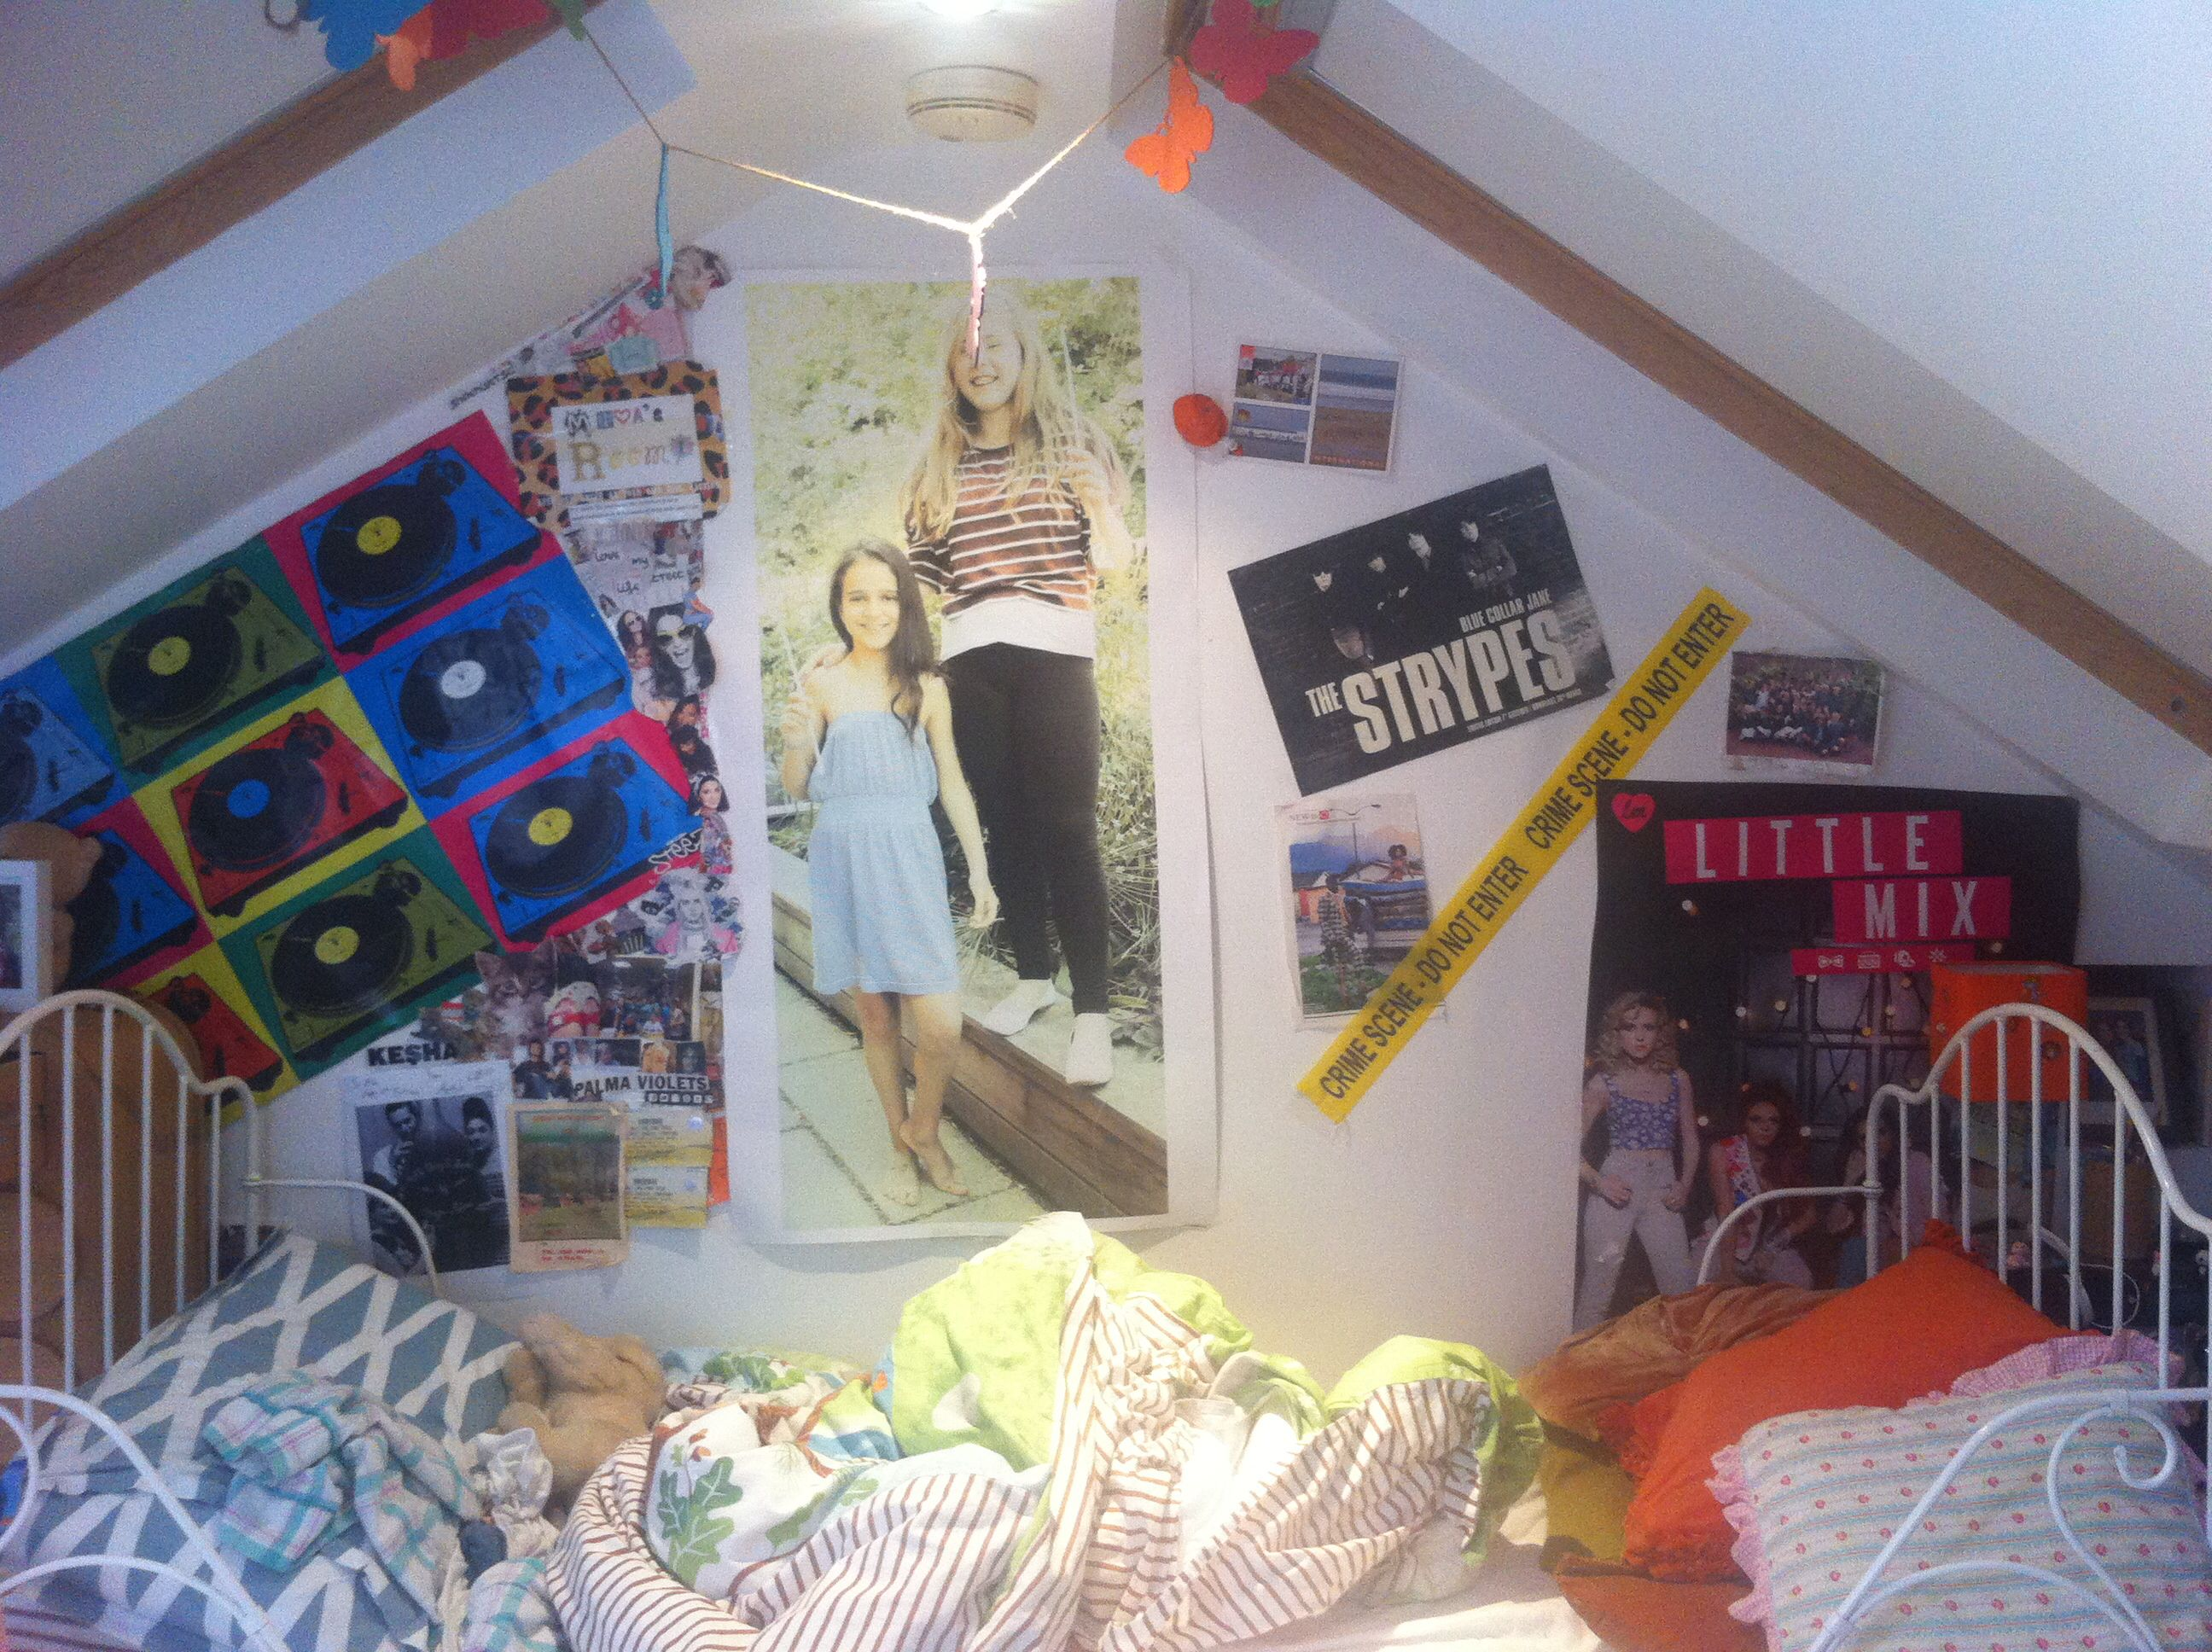 This is one of my main walls in my room! (Excuse the messy bed!) but I really like all my posters and thought it would be a really fun and cute d.i.y for your room! xxx